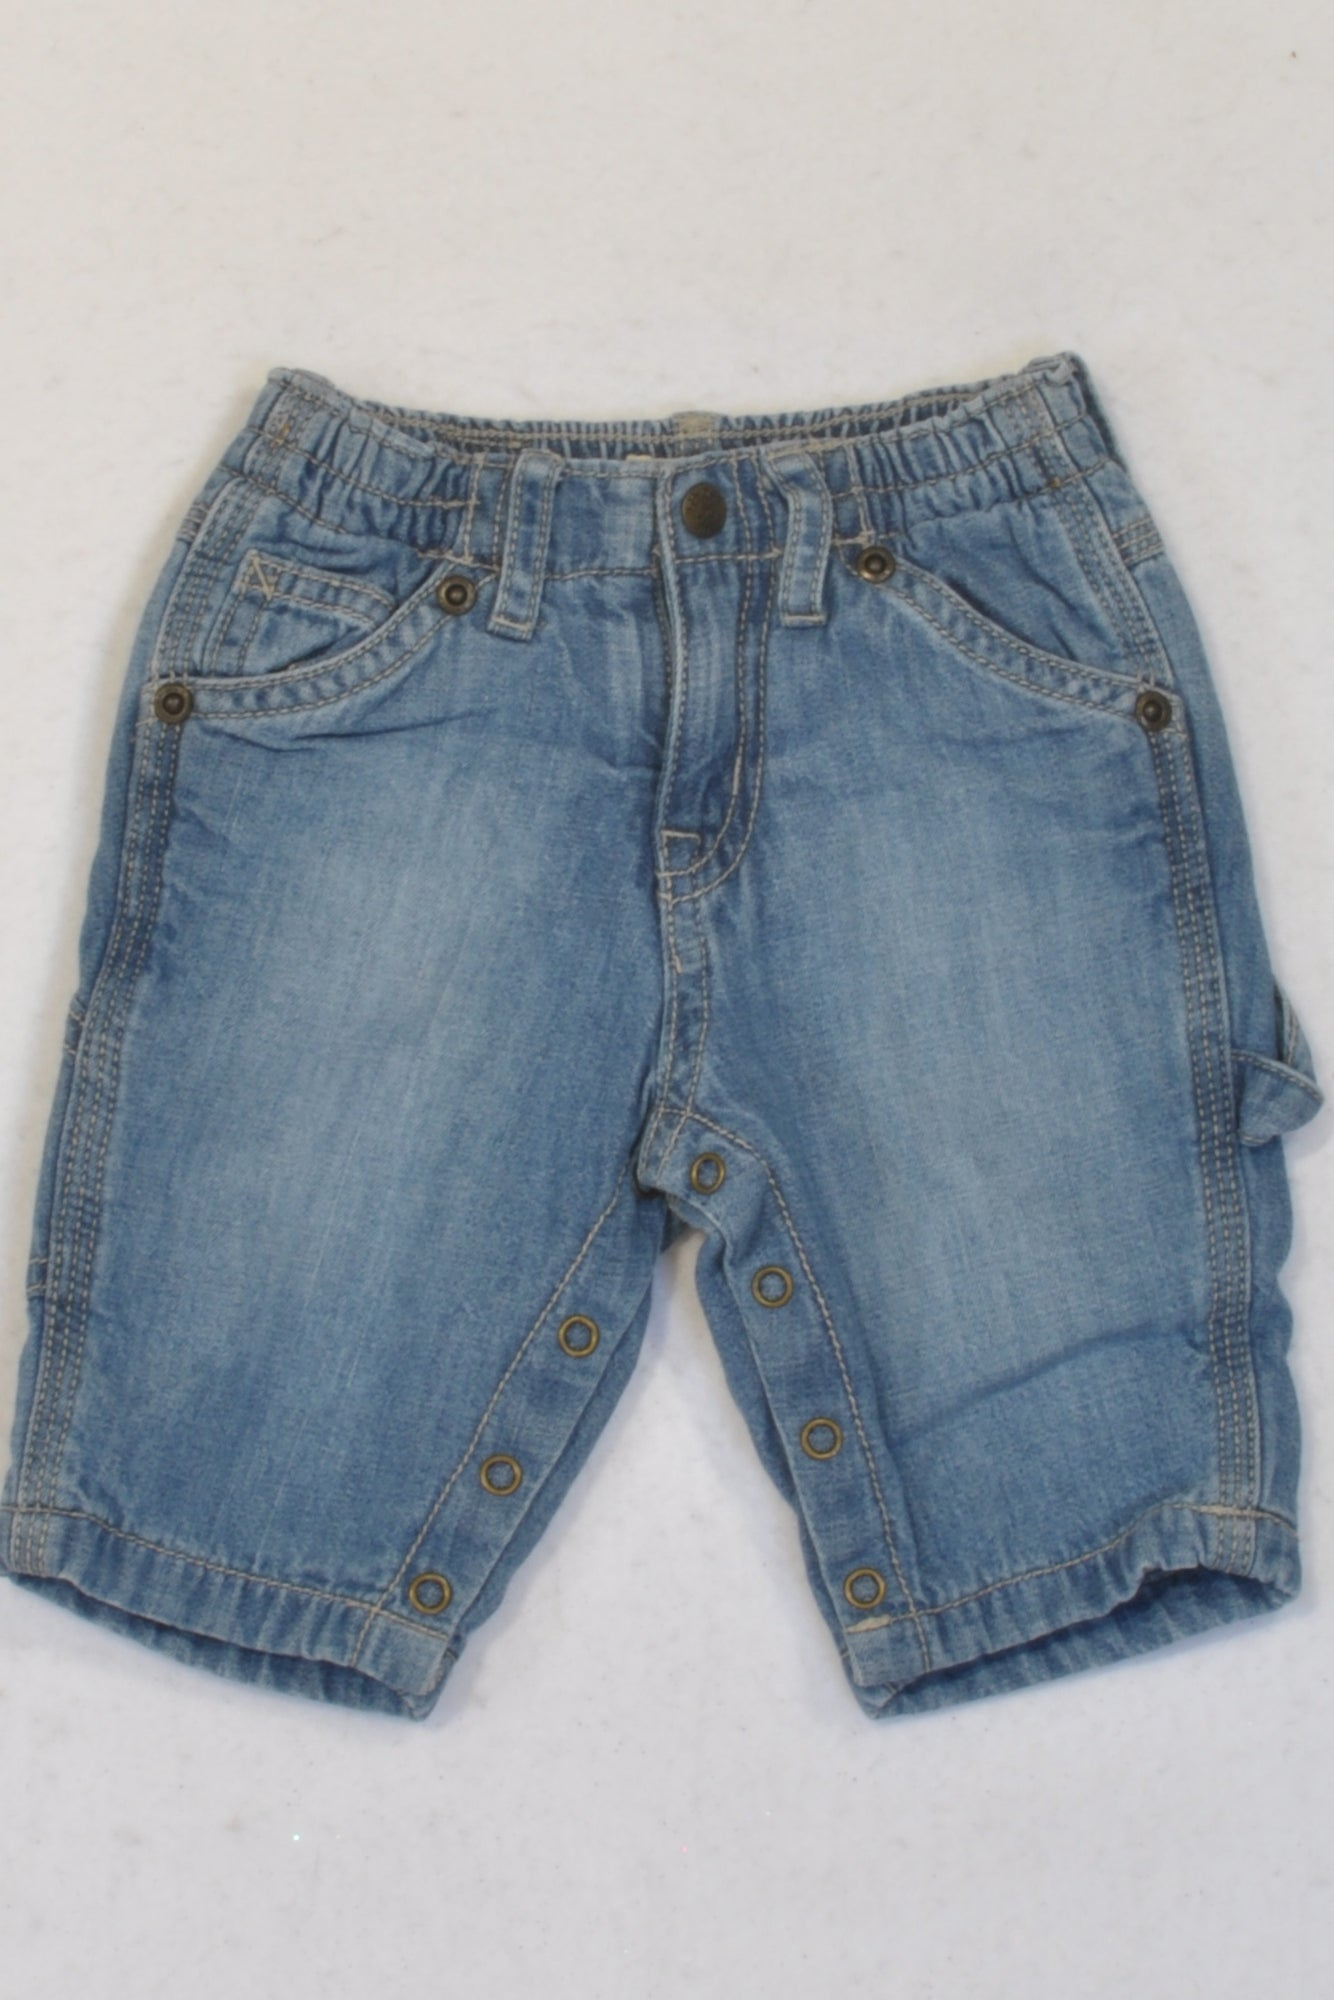 Pick 'n Pay Stone Washed Denim Pants Boys 0-3 months